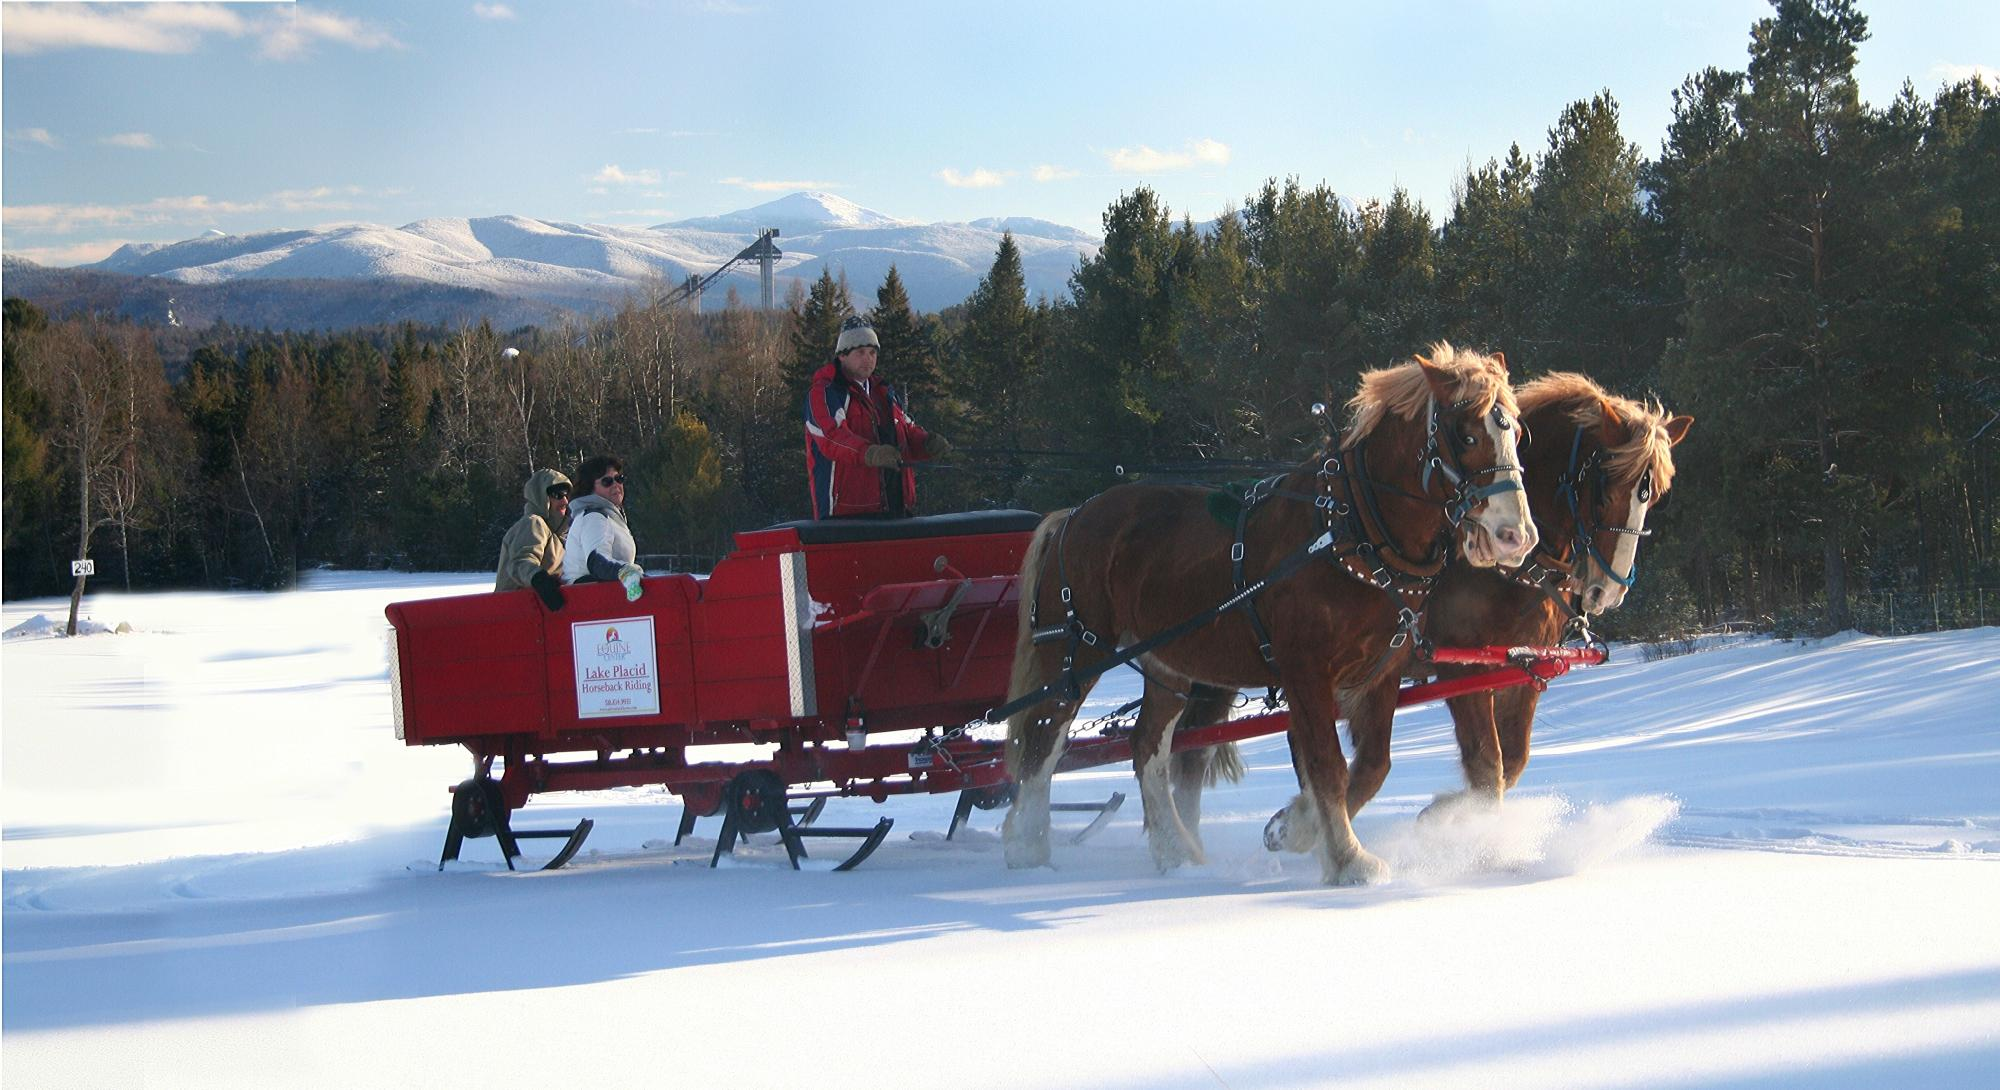 These 5 Horse Drawn Carriage Rides In New York Are Pure Magic